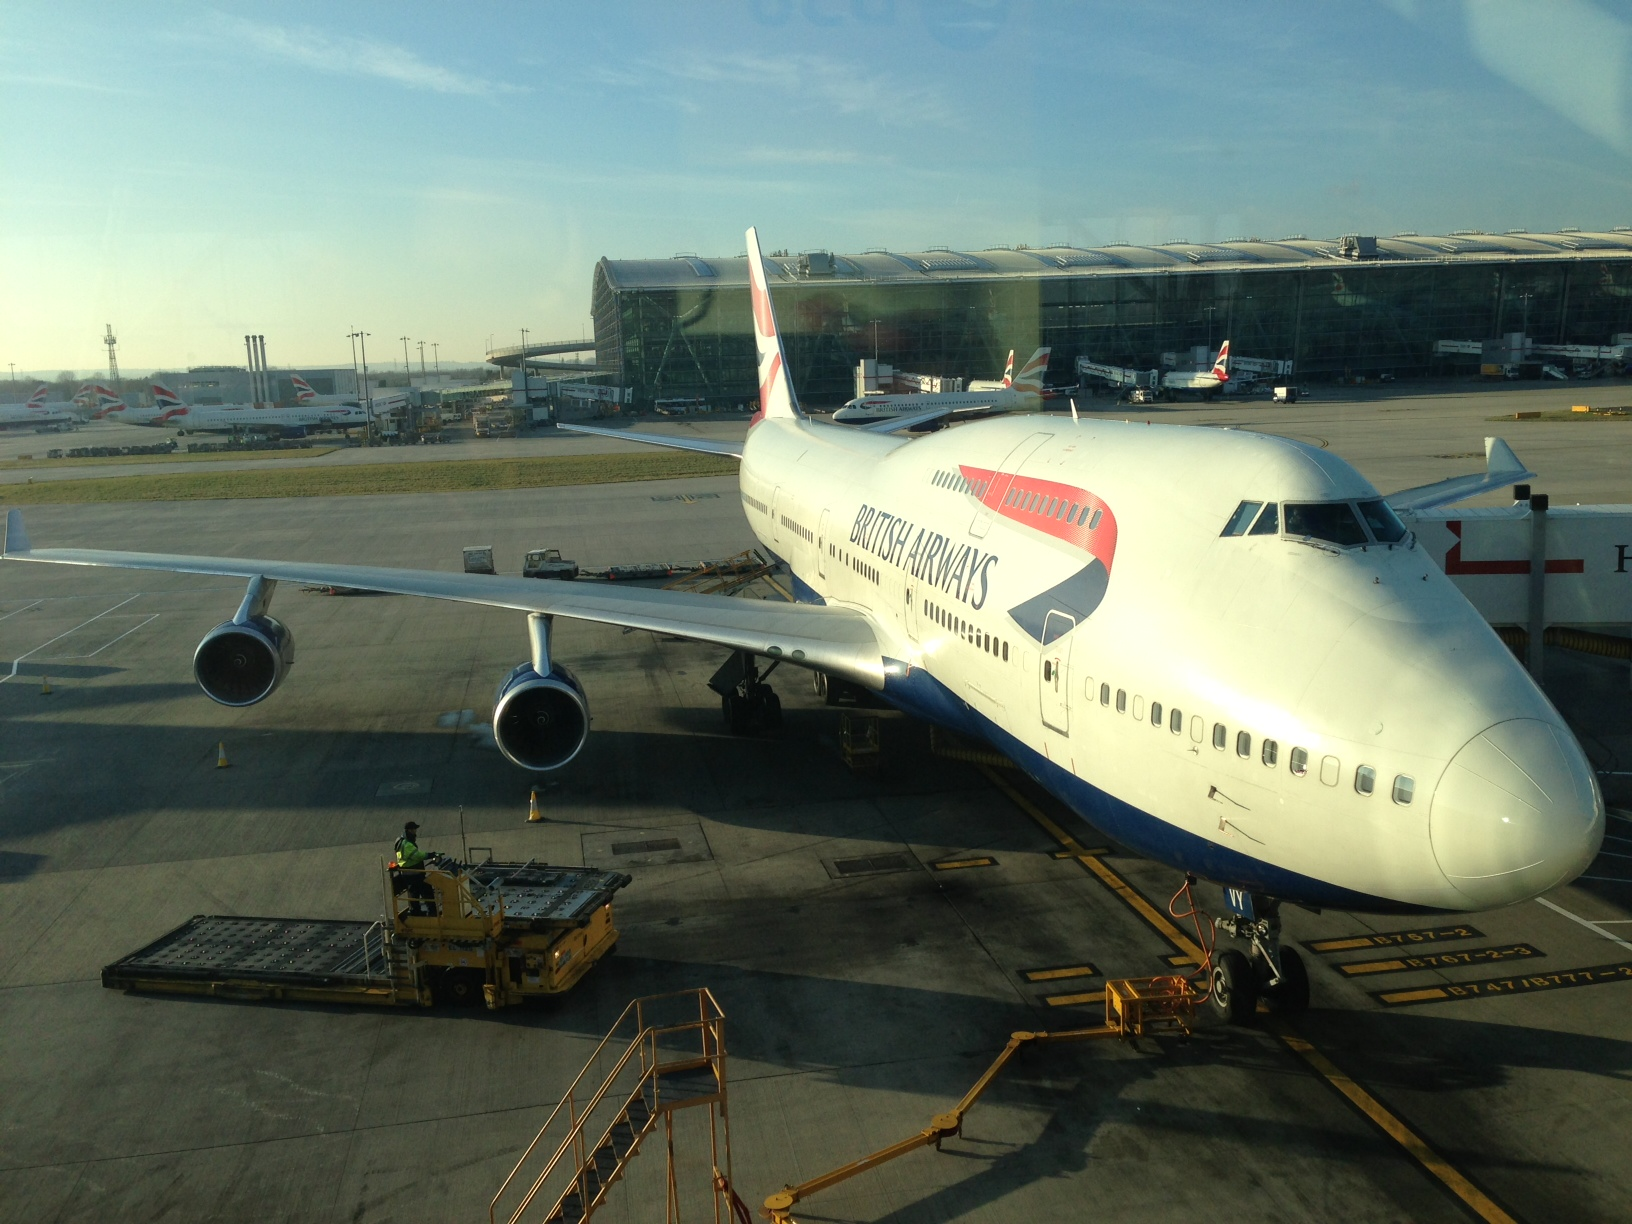 Flying long-haul with kids: Virgin vs BA | The Trunki Files